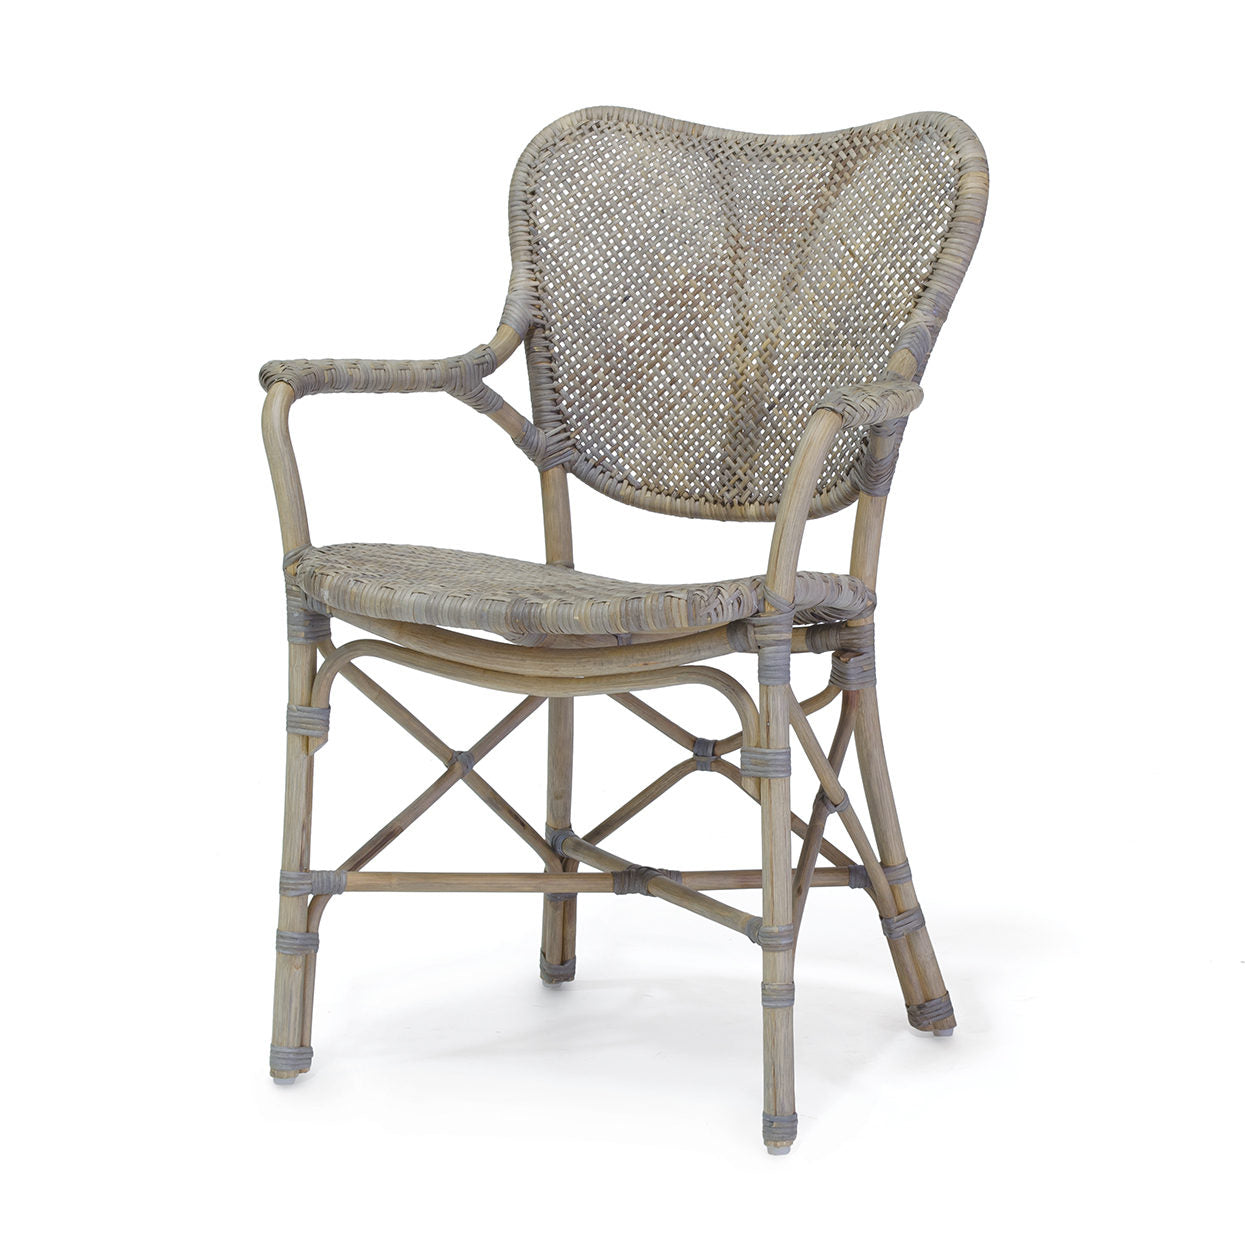 Dining - Woven Rattan Arm Chair